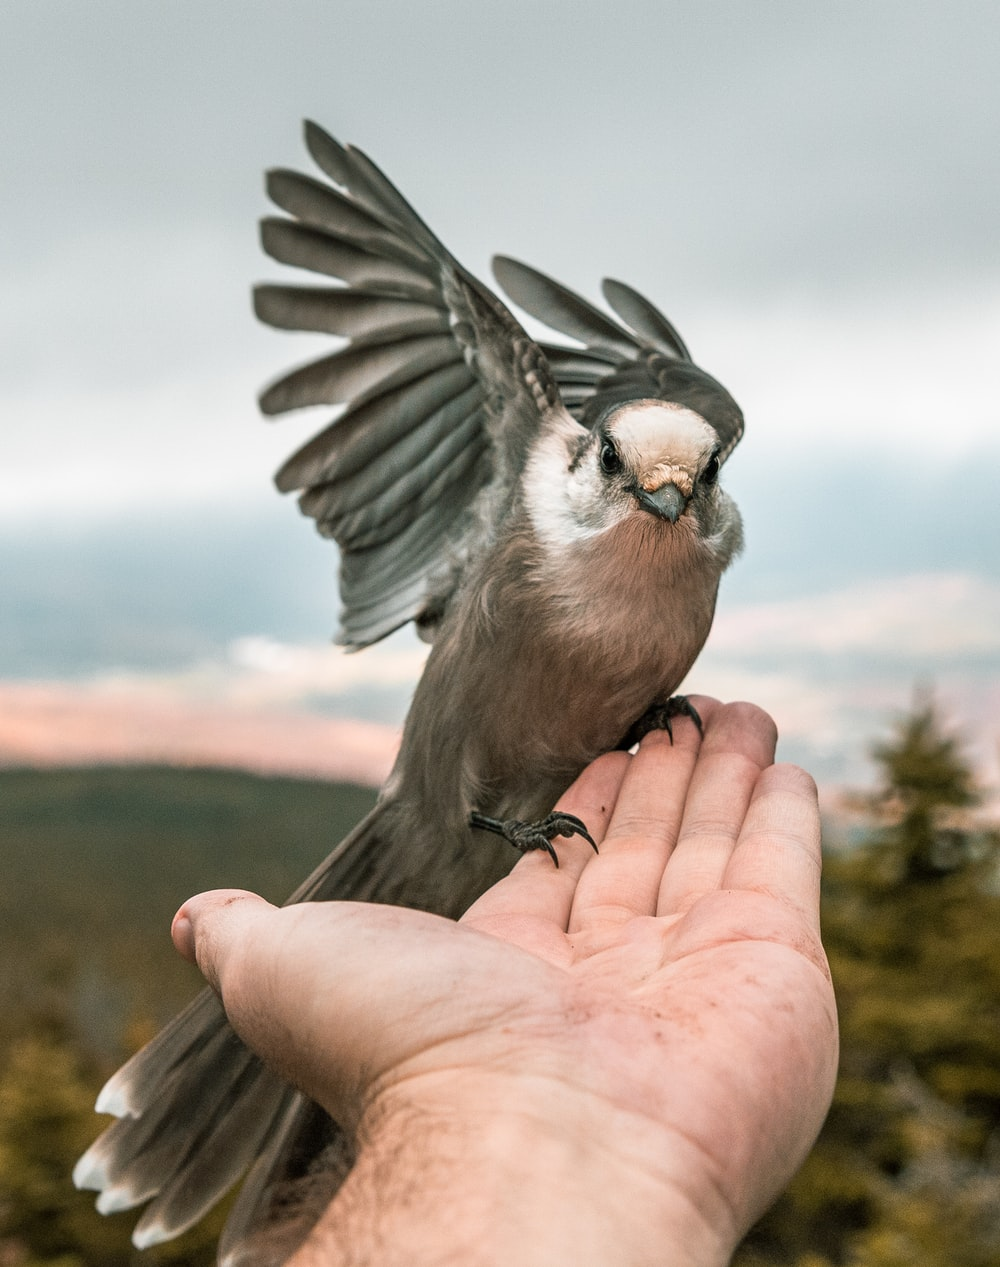 gray bird perched on person's hand